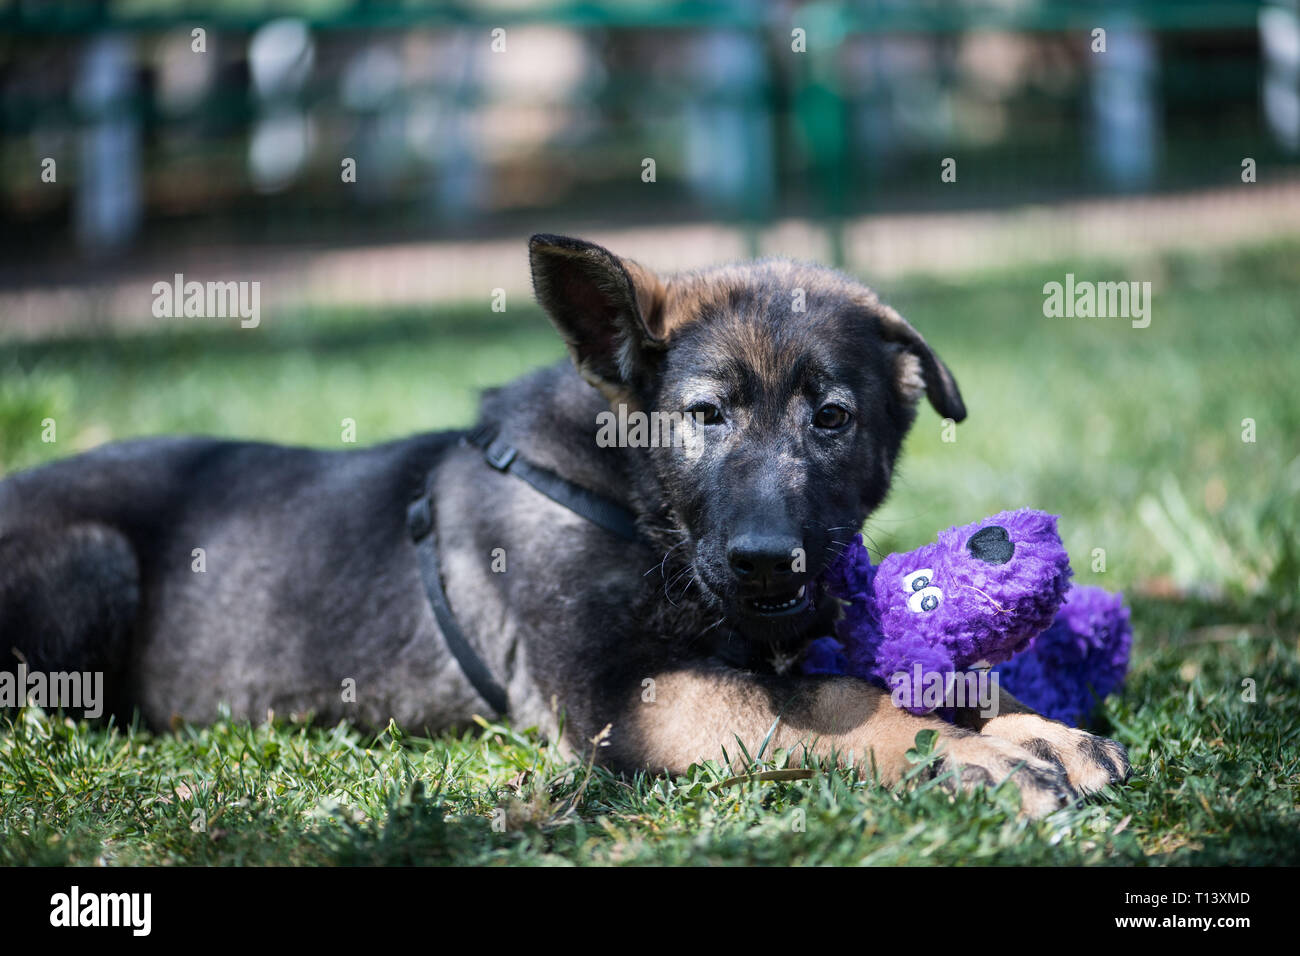 (190323) -- KUNMING, March 23, 2019 (Xinhua) -- China's first cloned police dog Kunxun plays at Kunming Police Dog Base in Kunming, southwest China's Yunnan Province, March 21, 2019. Three-month-old Kunxun arrived at Kunming Police Dog Base from Beijing earlier this month to receive training. Kunxun was born in December 2018 in Beijing at a healthy condition with 540 grams in weight and 23 centimeters in length. Kunxun was cloned from a 7-year-old female police dog named Huahuangma, which is considered a great detective dog. According to a test by a institution, Kunxun's DNA is over 99.9 perce - Stock Image